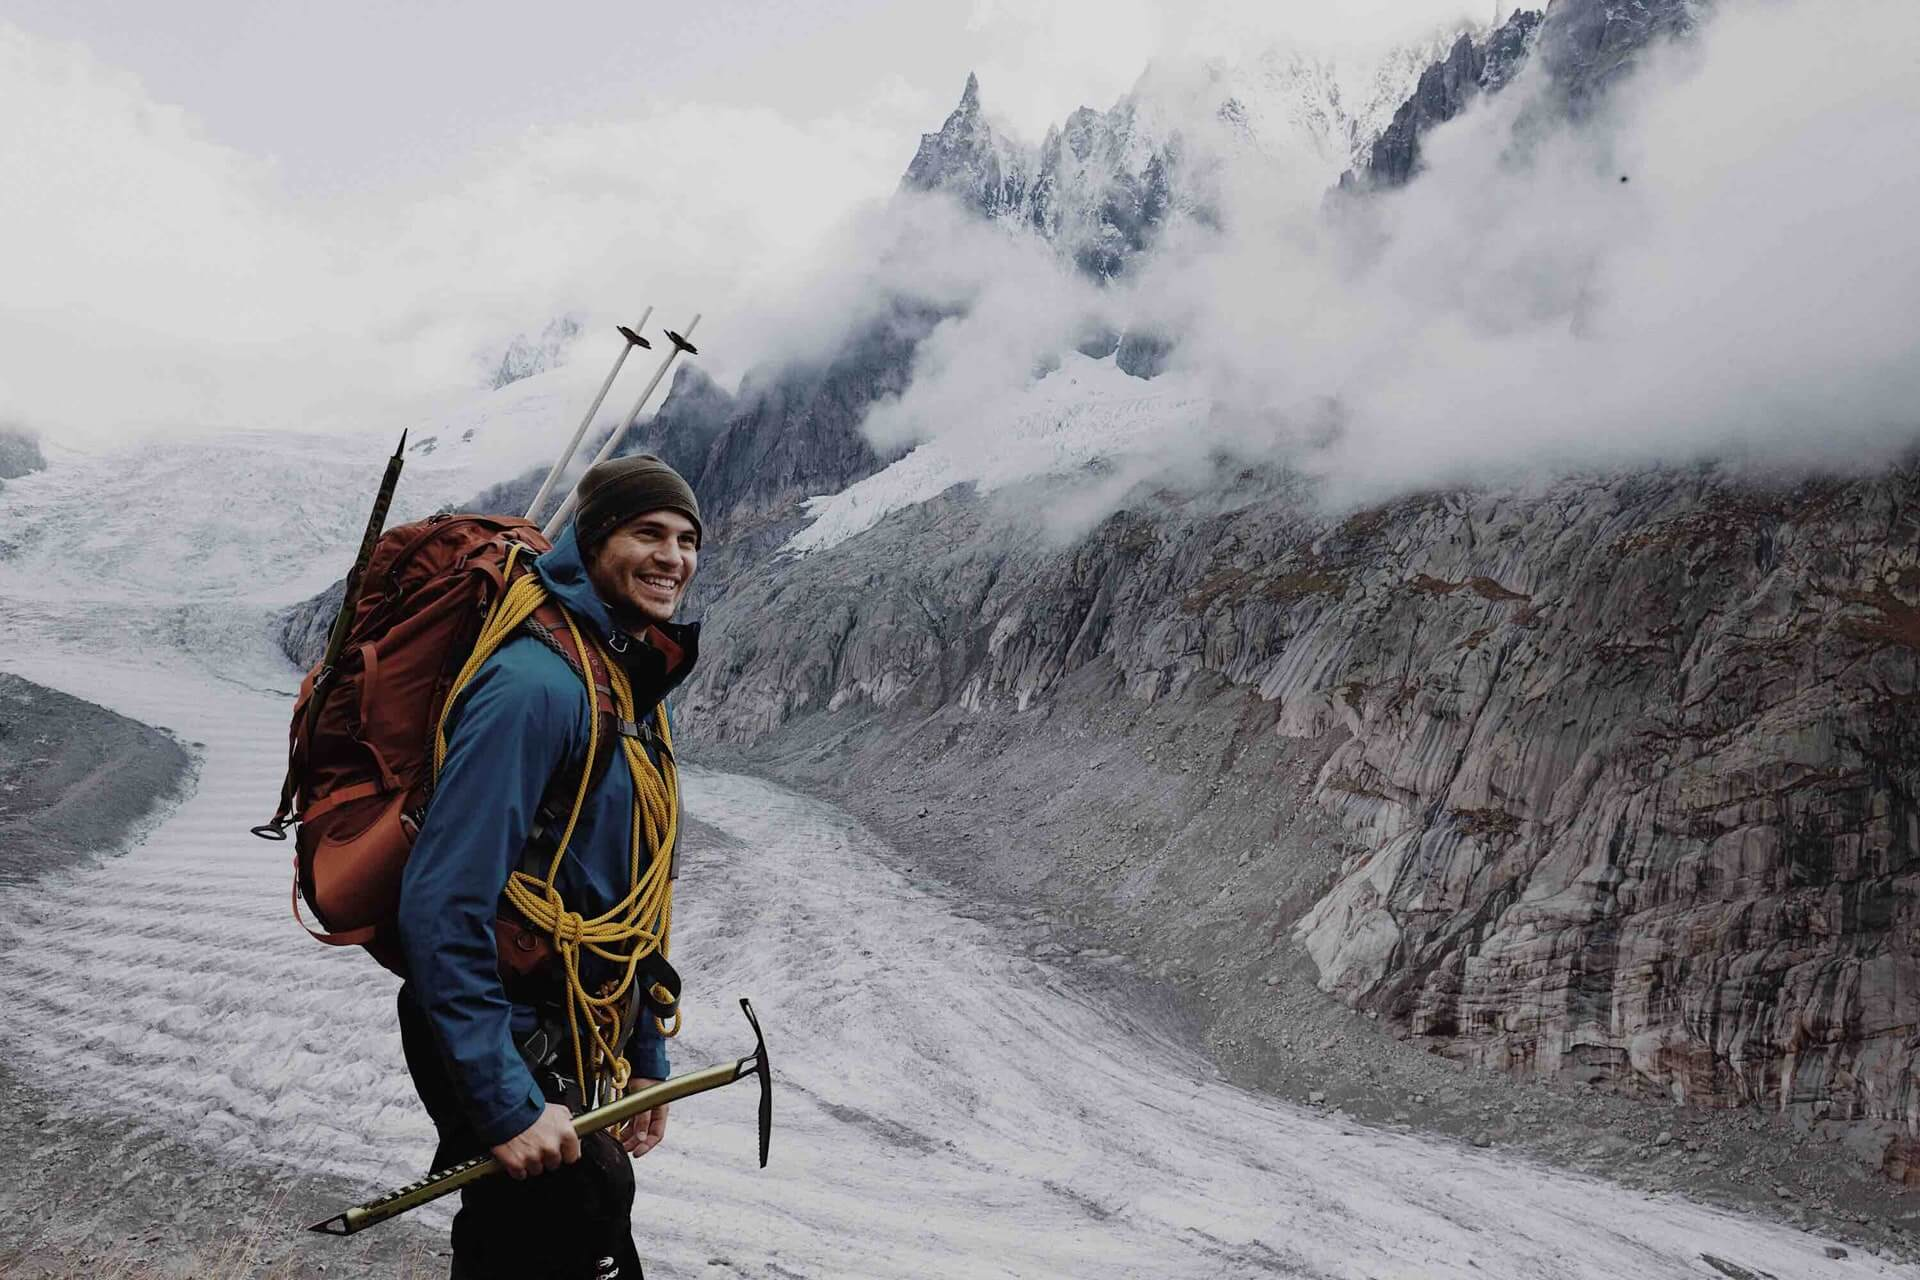 100 Great Facts about Adventure Travel & Outdoor Activities